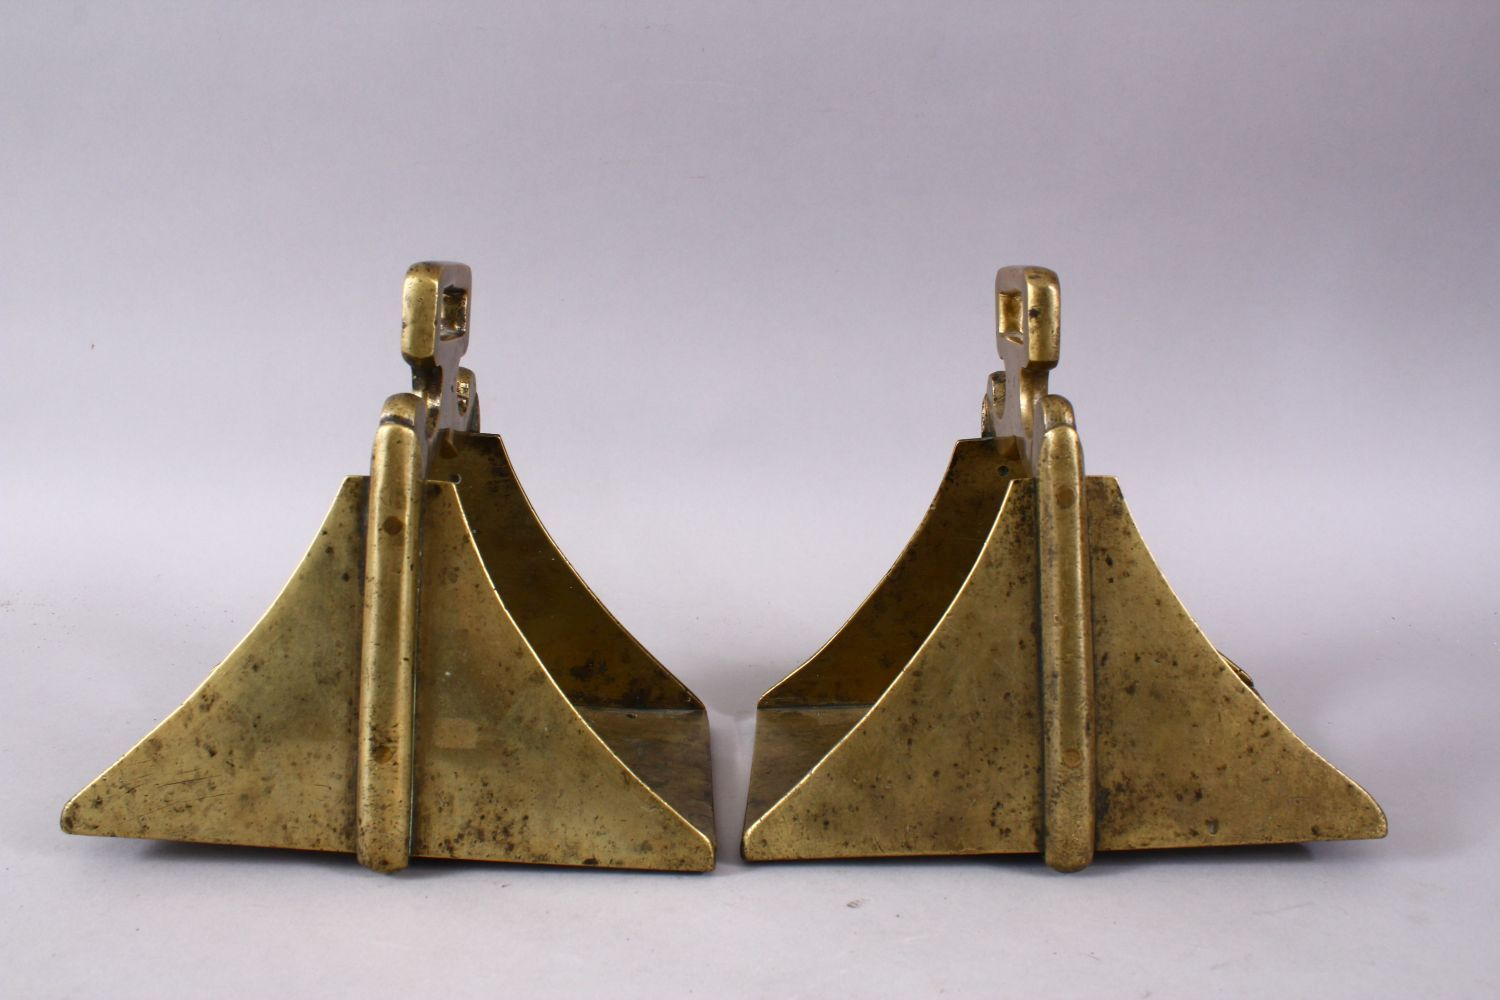 A GOOD PAIR OF 19TH CENTURY BRASS / BRONZE HORSE STIRRUP'S, 17cm high x 12cm wide. - Image 3 of 3